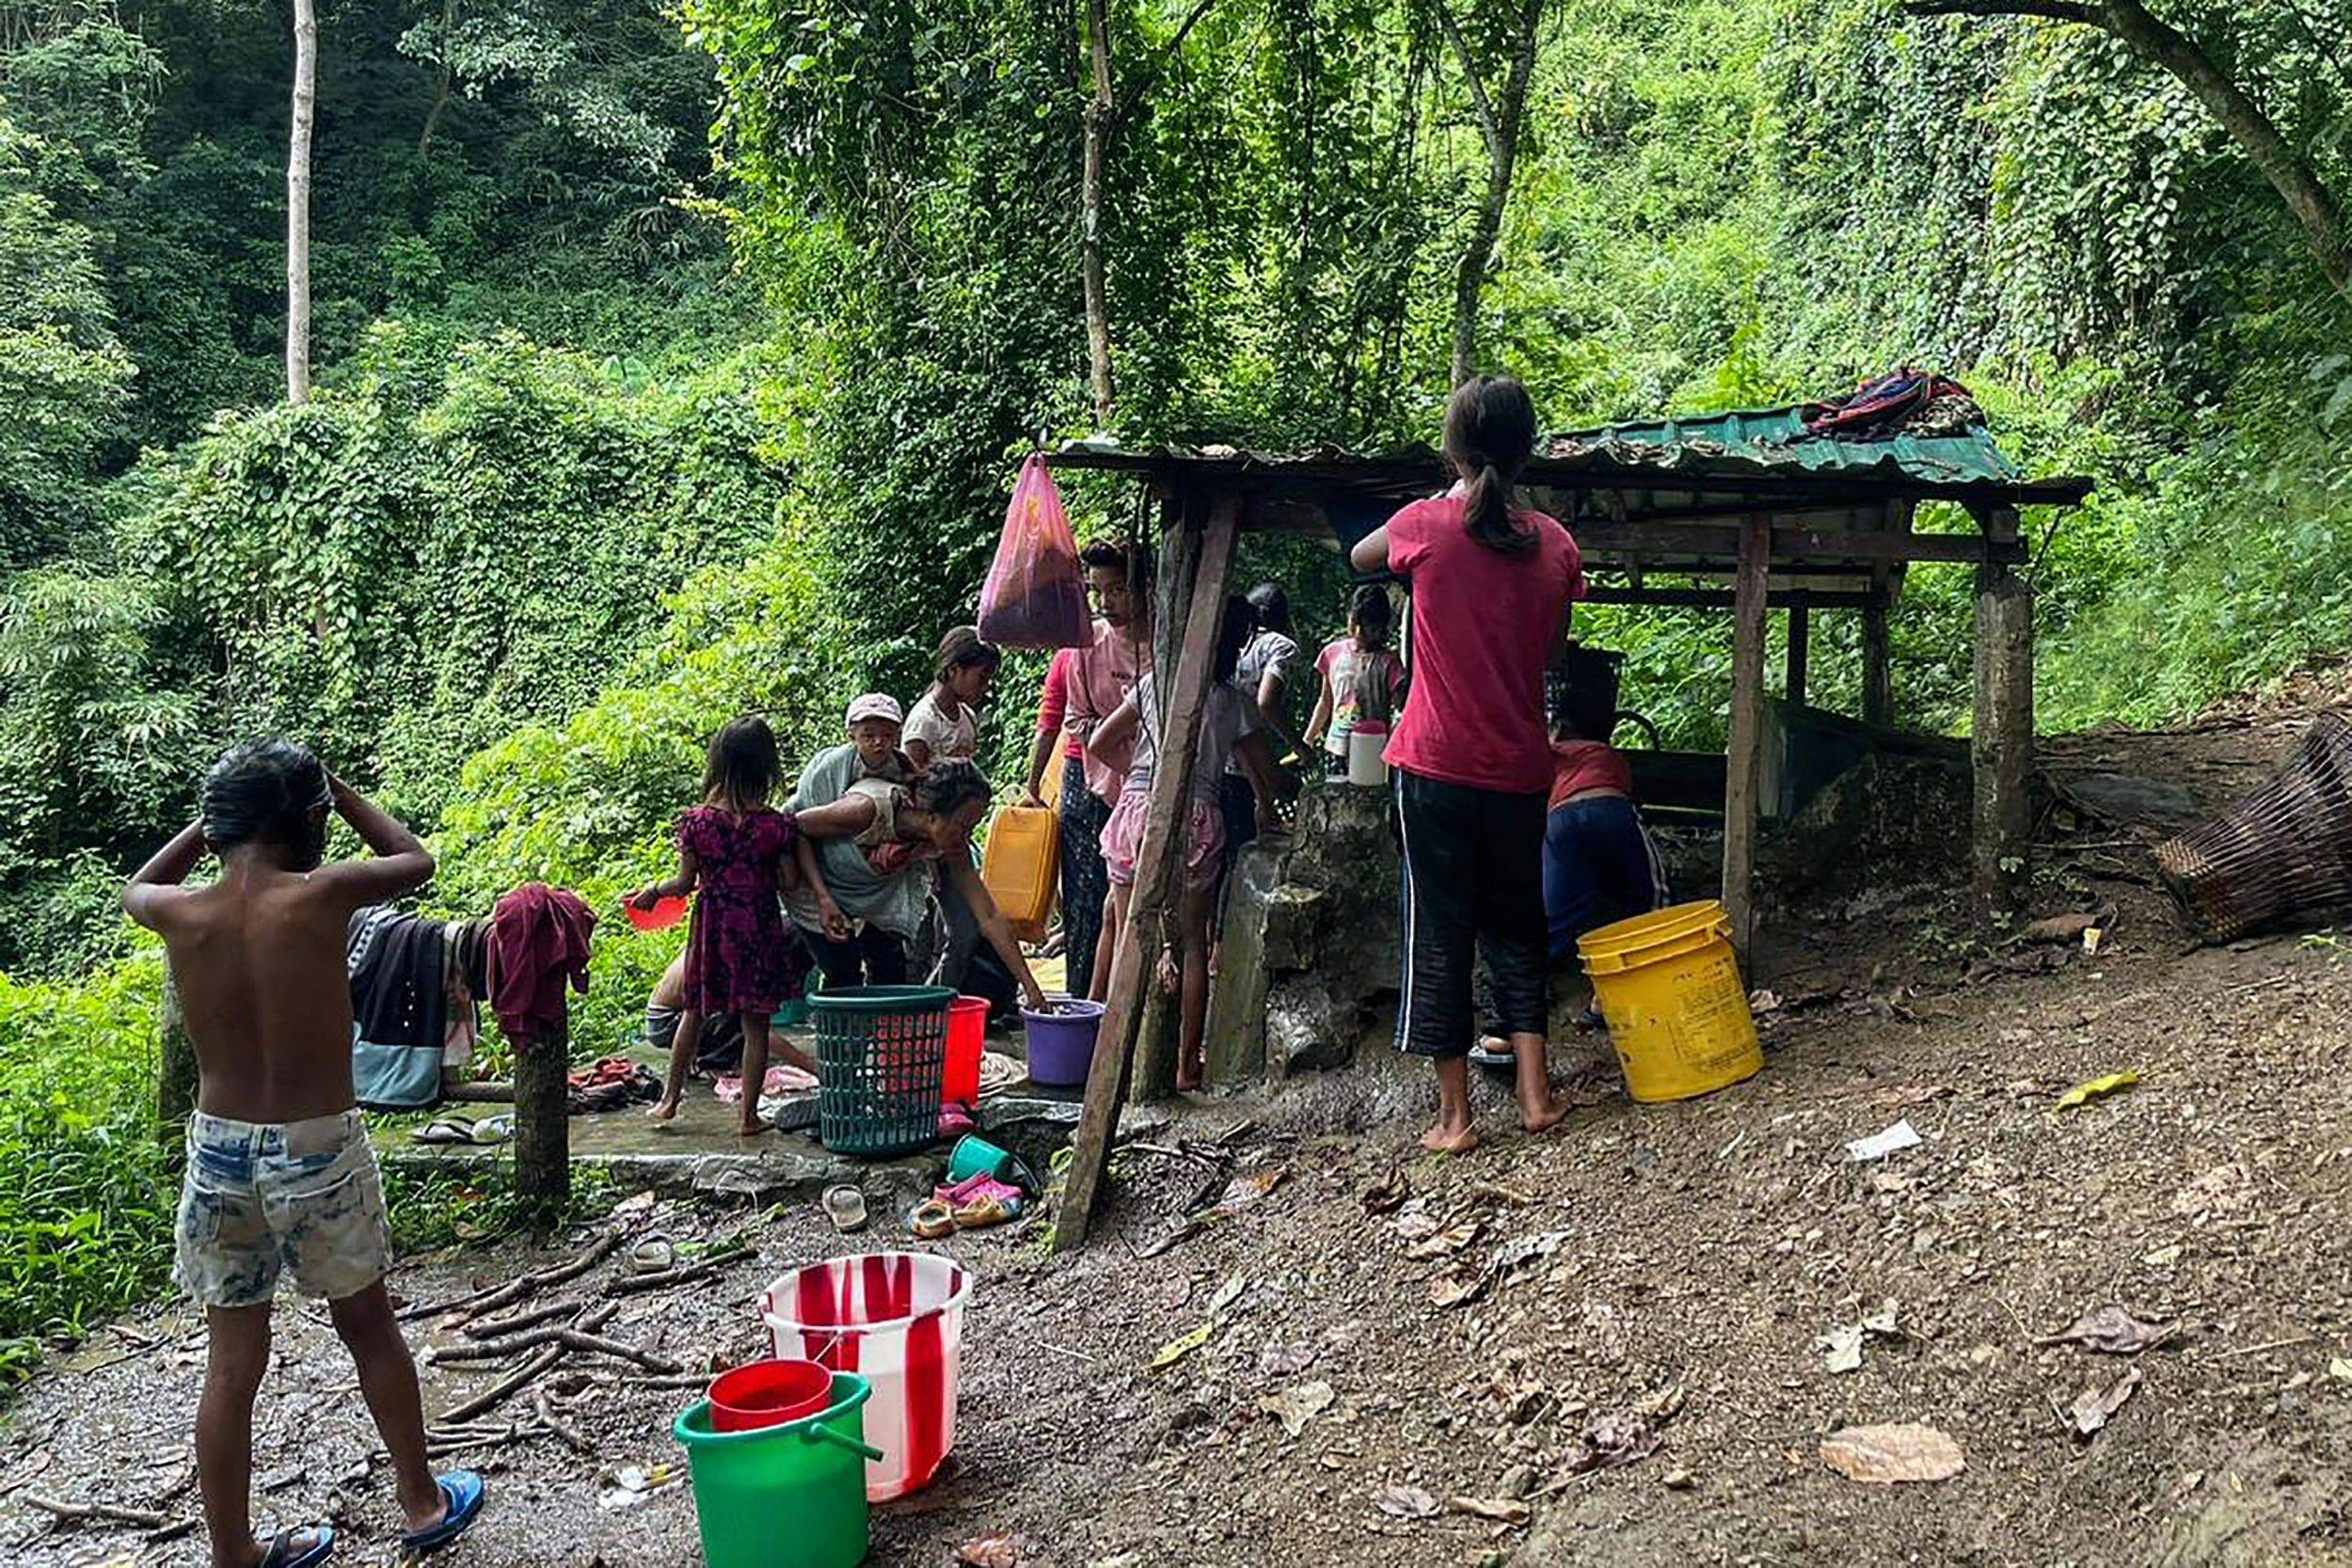 Refugees collect water at Pang village in India's eastern state of Mizoram, near the Myanmar border on Friday, after people fled following attacks by Myanmar's military on villages in western Chin state. | AFP-JIJI